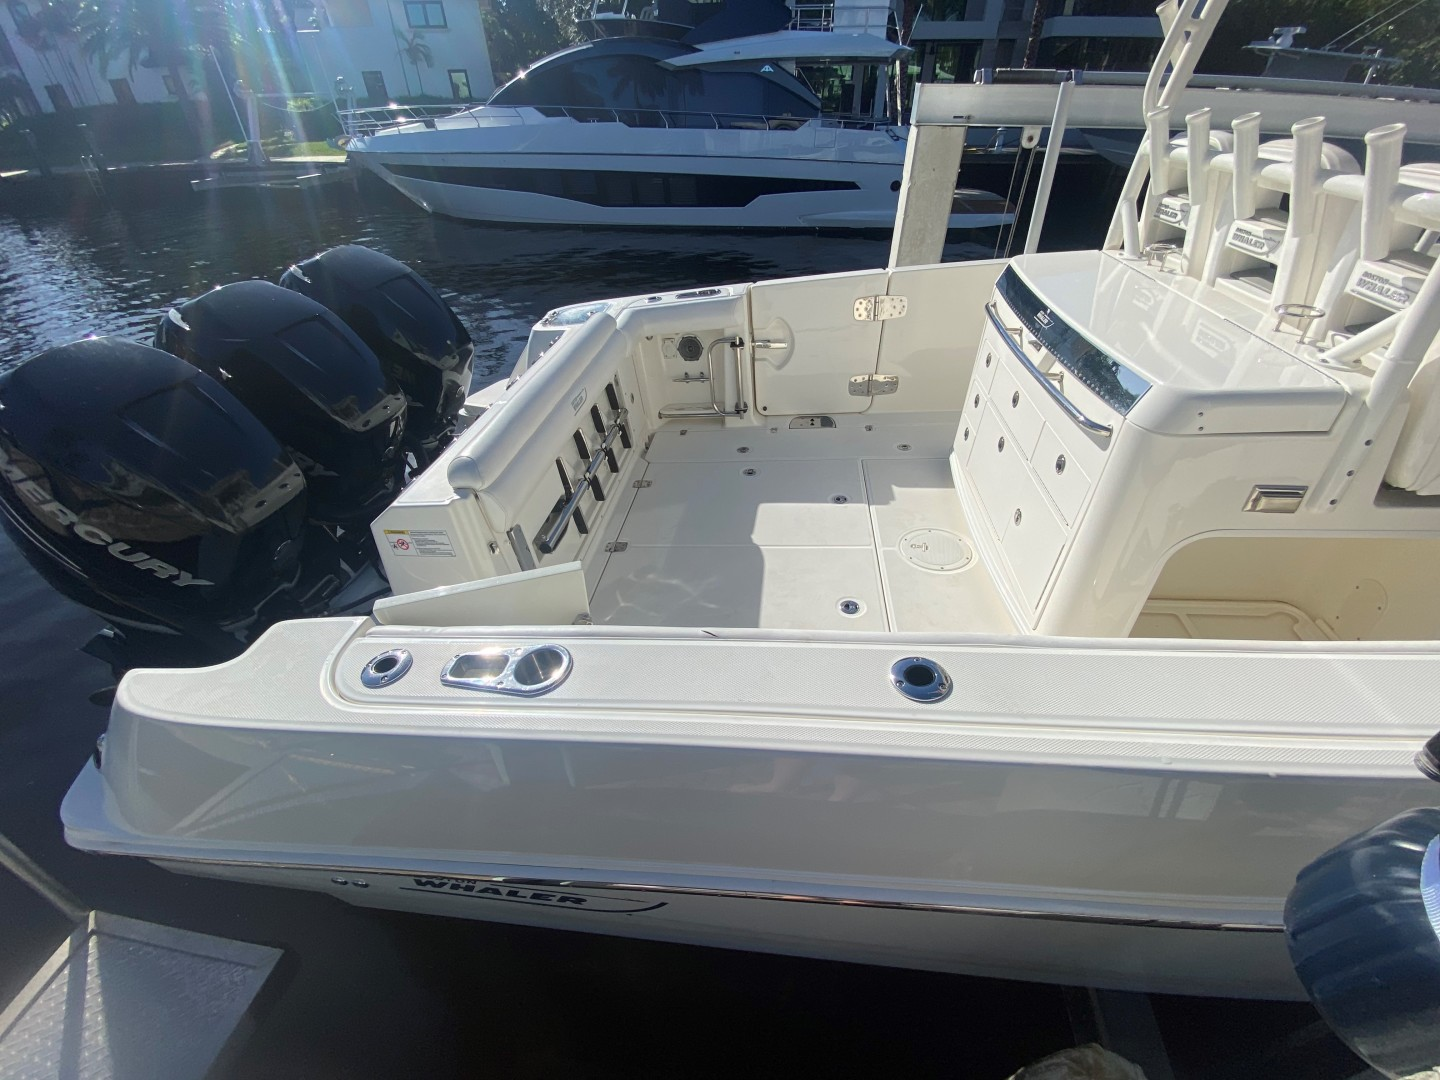 Boston Whaler-350 Outrage 2015-D STRACTION Fort Lauderdale-Florida-United States-1560617   Thumbnail